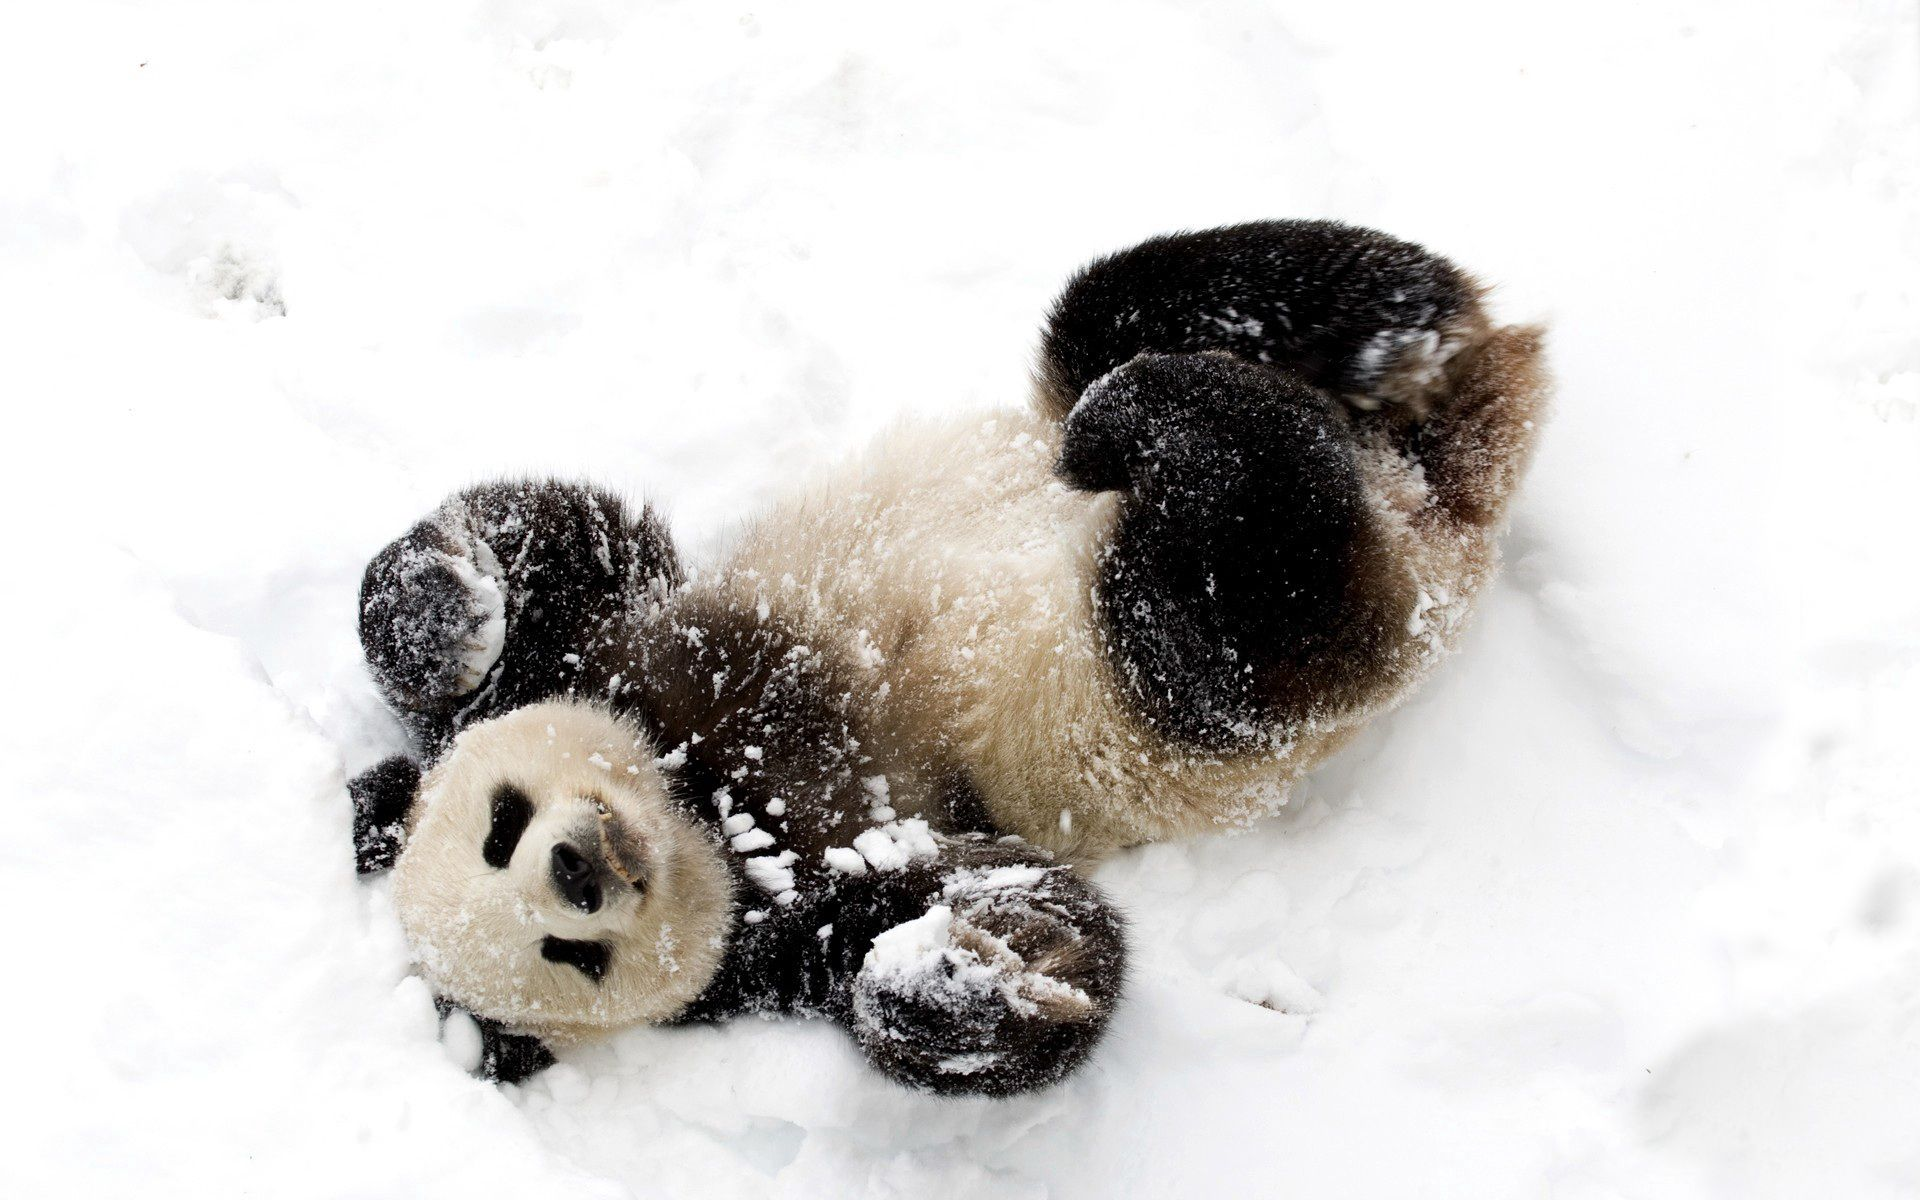 132677 download wallpaper Animals, Bear, Panda, Winter, Snow screensavers and pictures for free